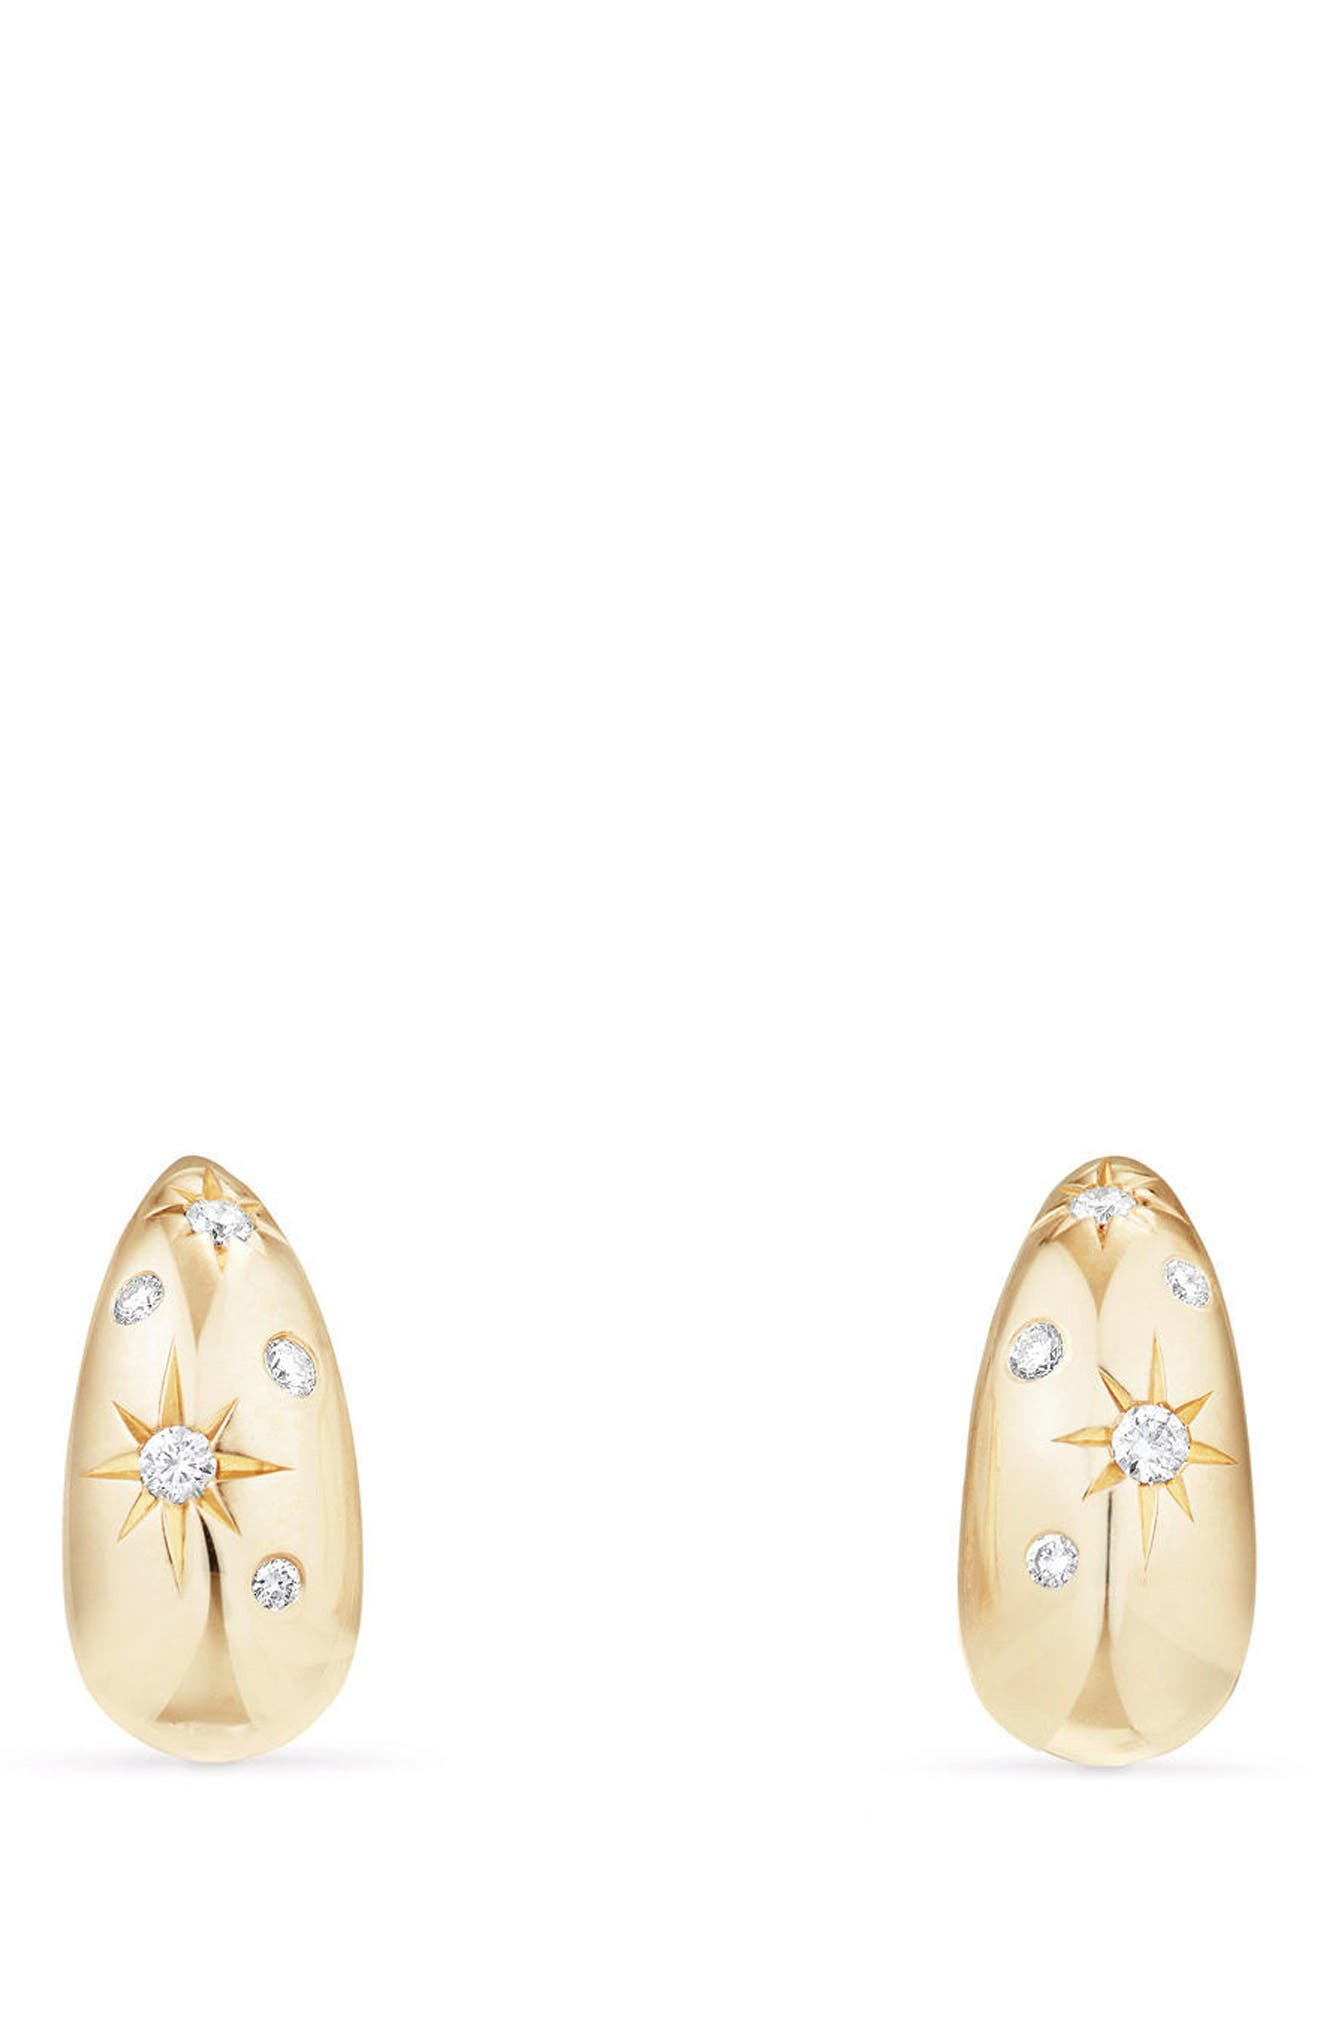 Pure Form Pod Earrings with Diamonds in 18K Gold, 15mm,                             Main thumbnail 1, color,                             Yellow Gold/ Diamond